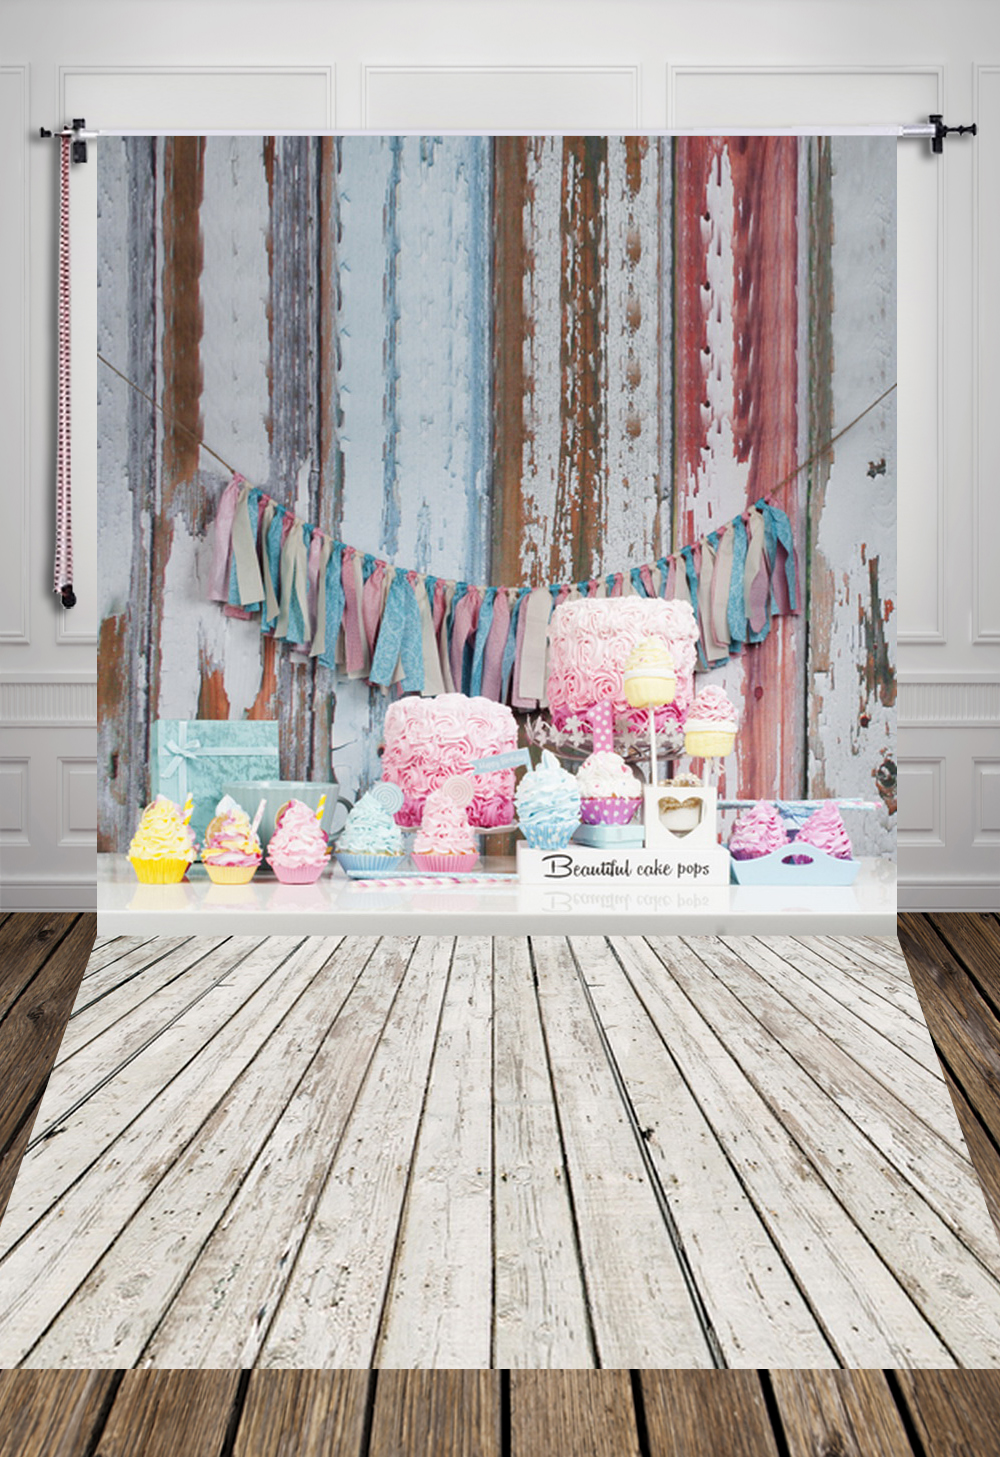 5X7ft1.5x2.2m) newborn baby birthday photography backdrops printed with wood floor and delicious cakes D-7245<br><br>Aliexpress